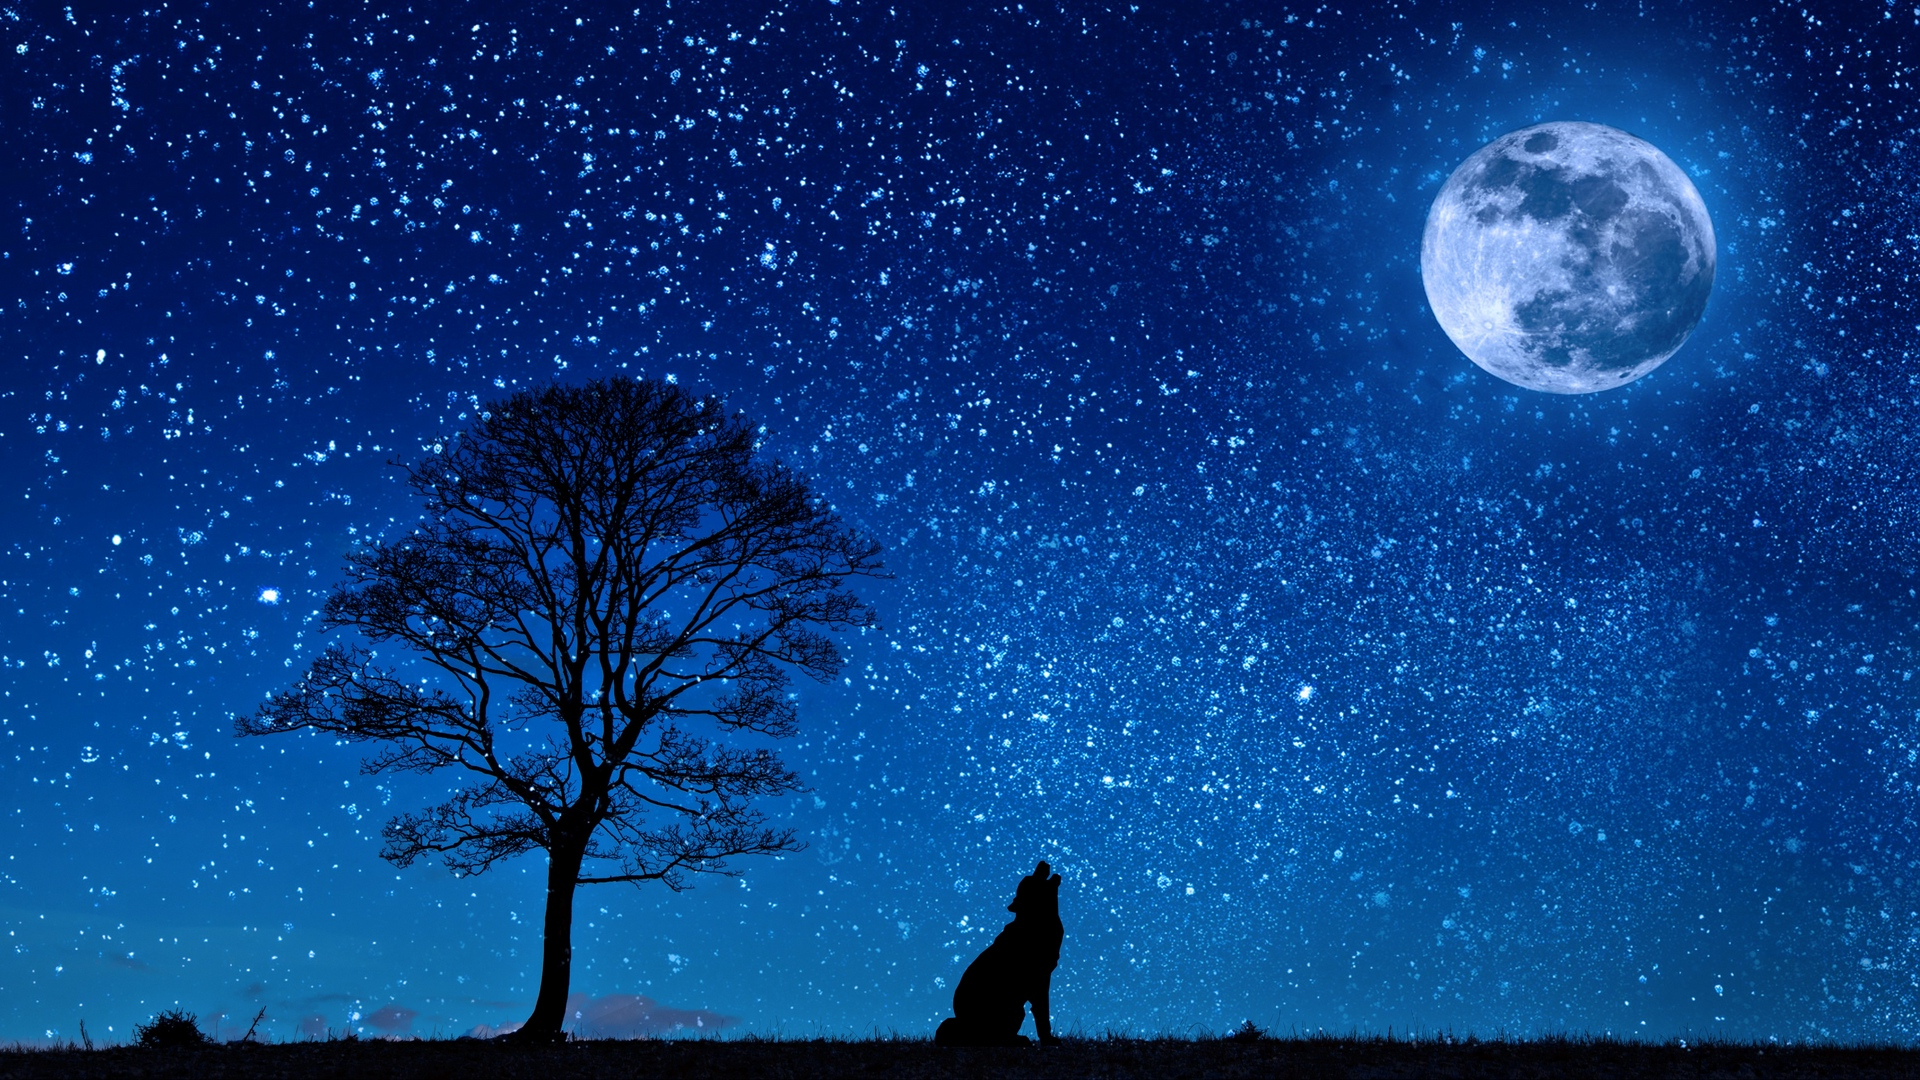 wolf starry sky tree moon